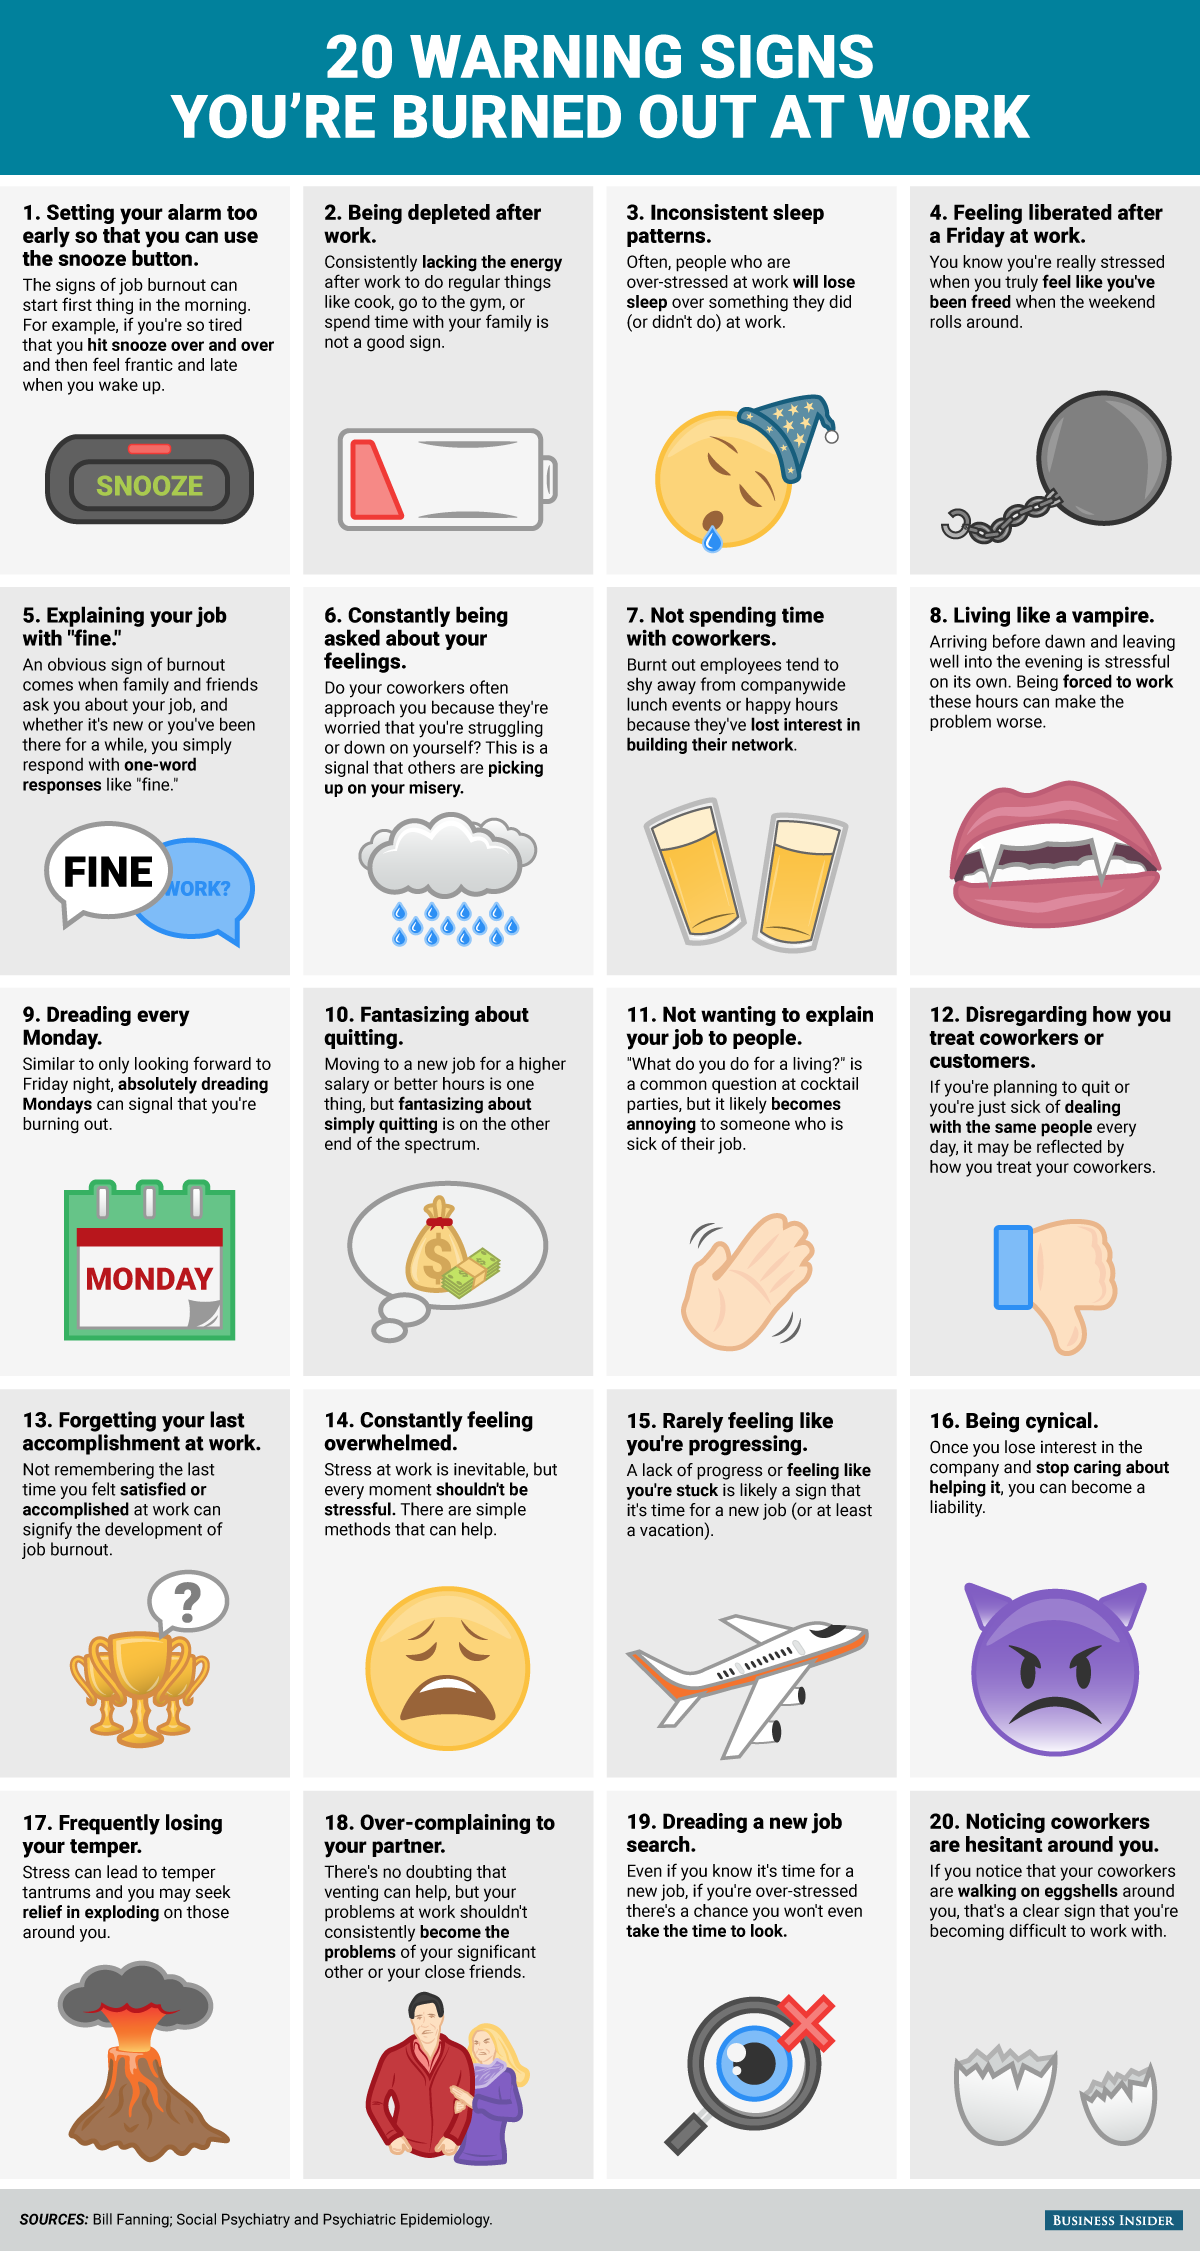 bi_graphics_20-warning-signs-you're-burnt-out-at-work